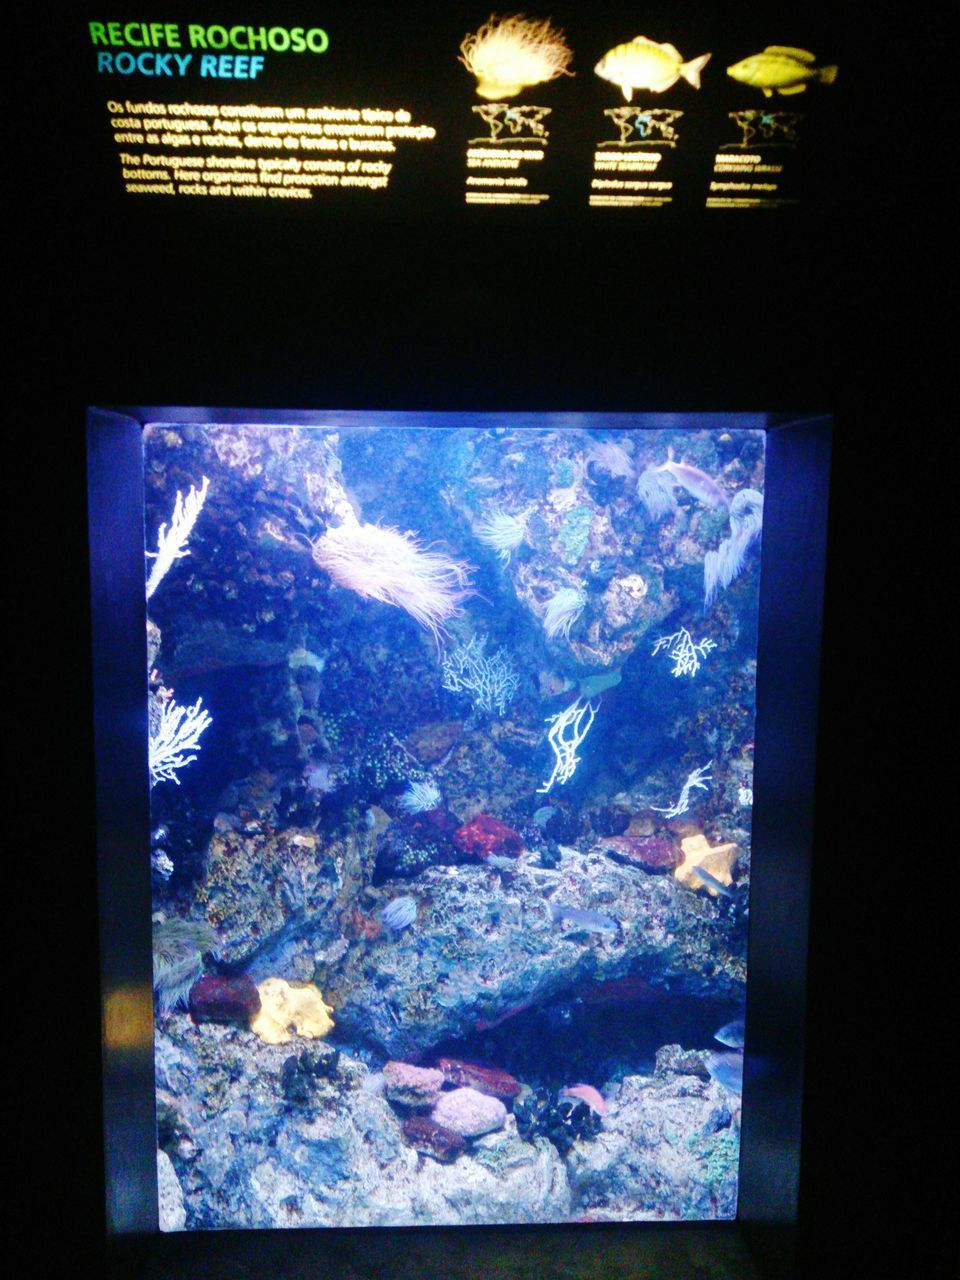 indoors, aquarium, arts culture and entertainment, underwater, no people, close-up, nature, sea life, animal themes, day